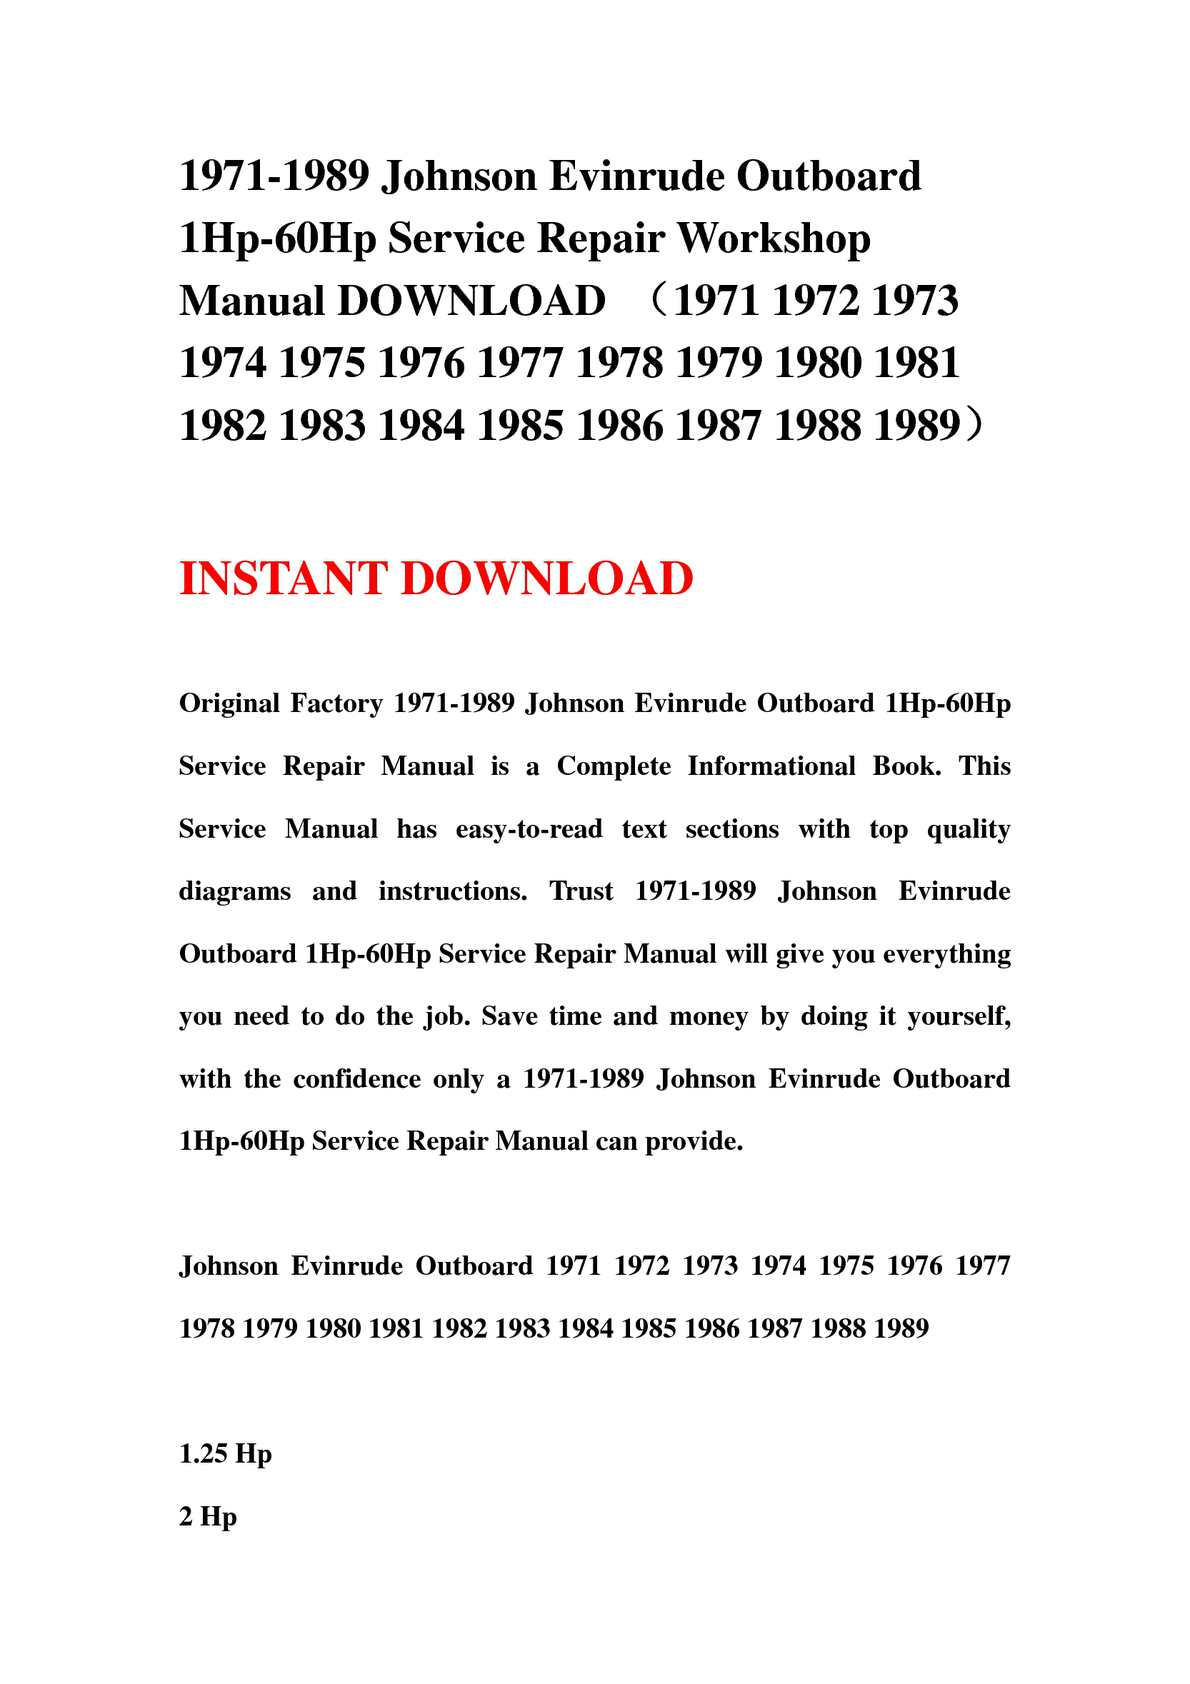 Calaméo - 1971-1989 Johnson Evinrude Outboard 1Hp-60Hp Service Repair  Workshop Manual DOWNLOAD (1971 1972 1973 1974 1975 1976 1977 1978 1979 1980  1981 1982 ...